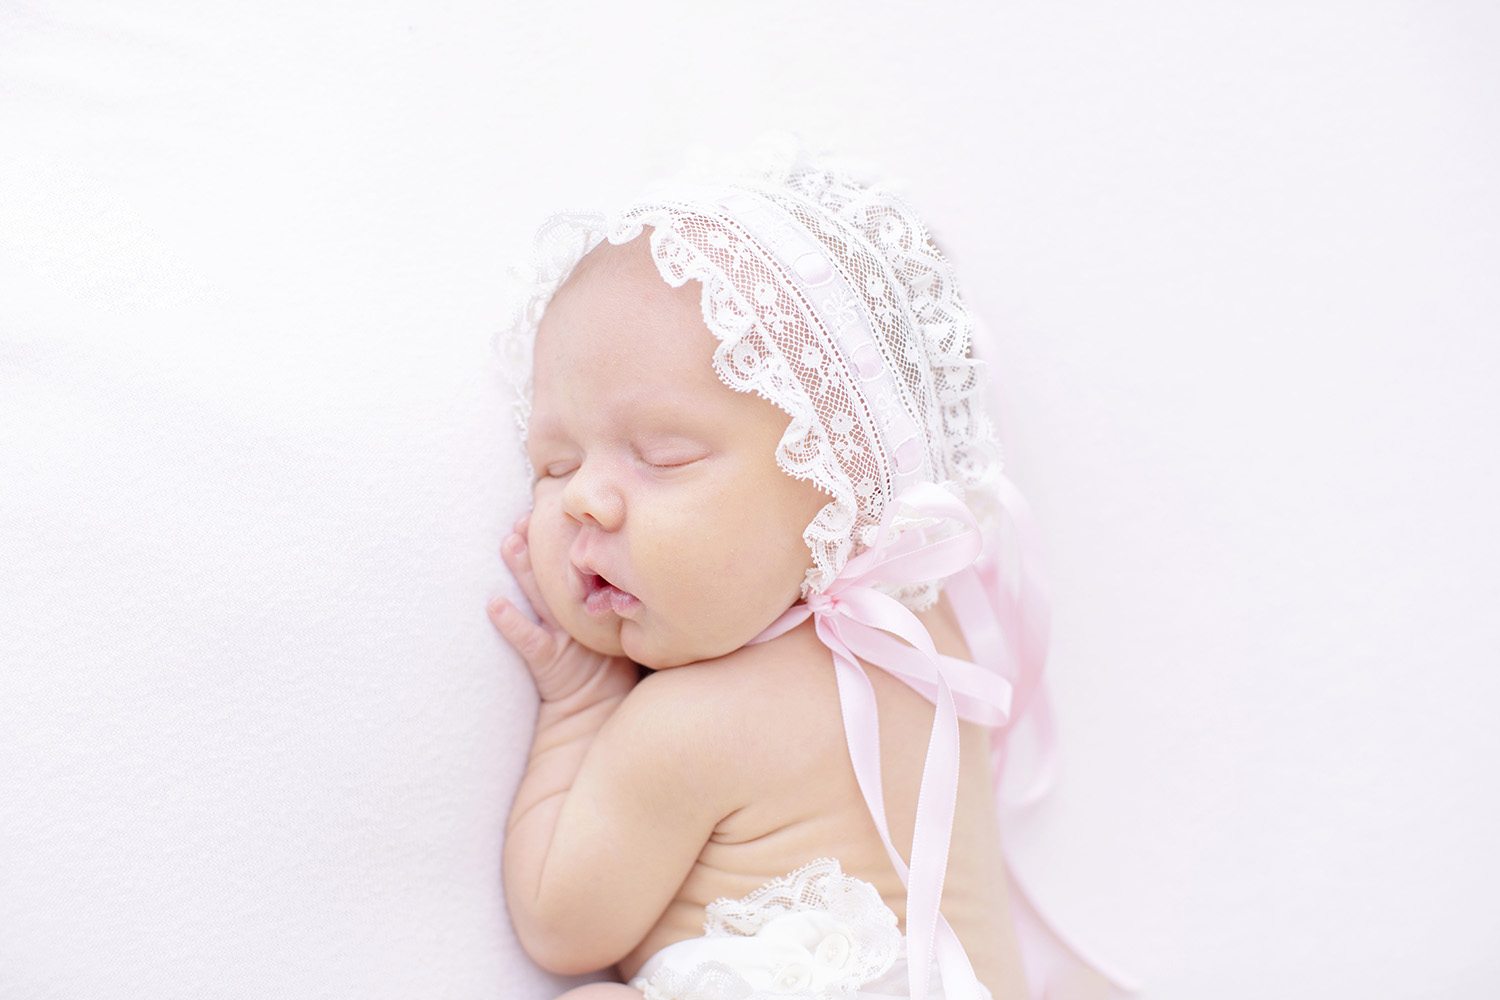 Swetman-Photography-Baby-Girl-Ocean-Springs-Mississippi-Newborn.jpg